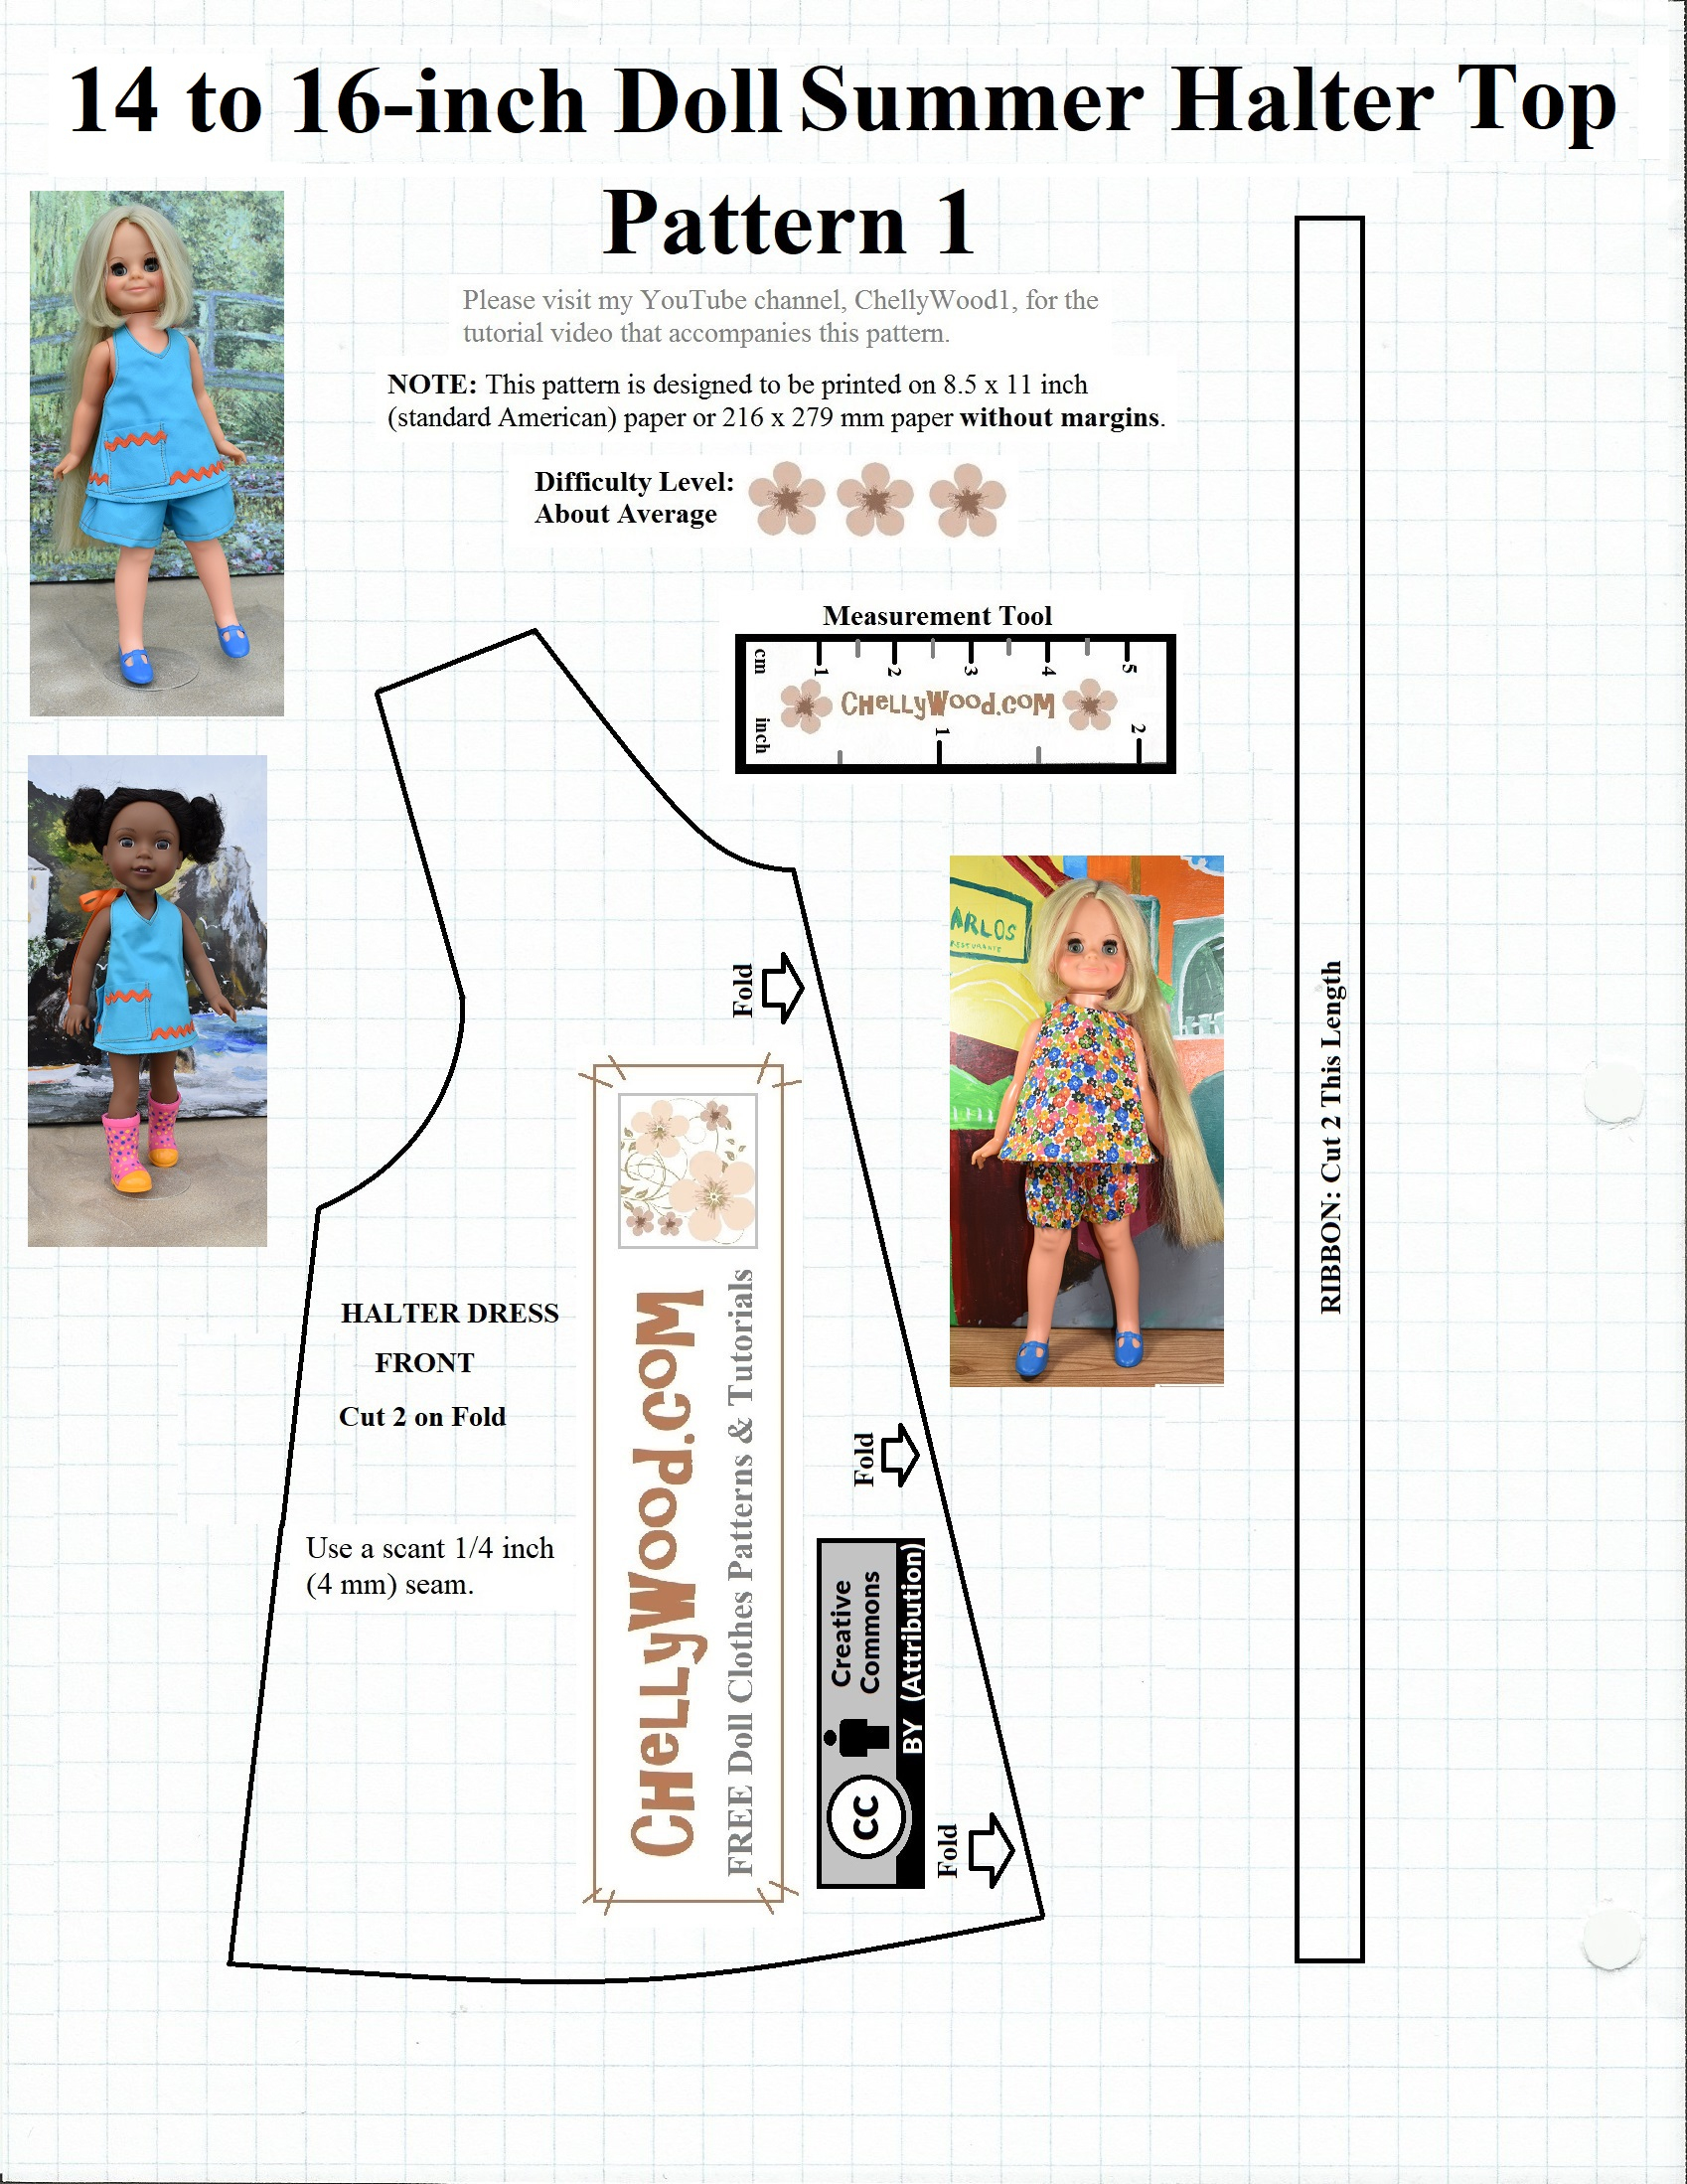 Free Doll Clothes Patterns For 18-Inch Dolls @ Chellywood - Free Printable Doll Clothes Patterns For 18 Inch Dolls